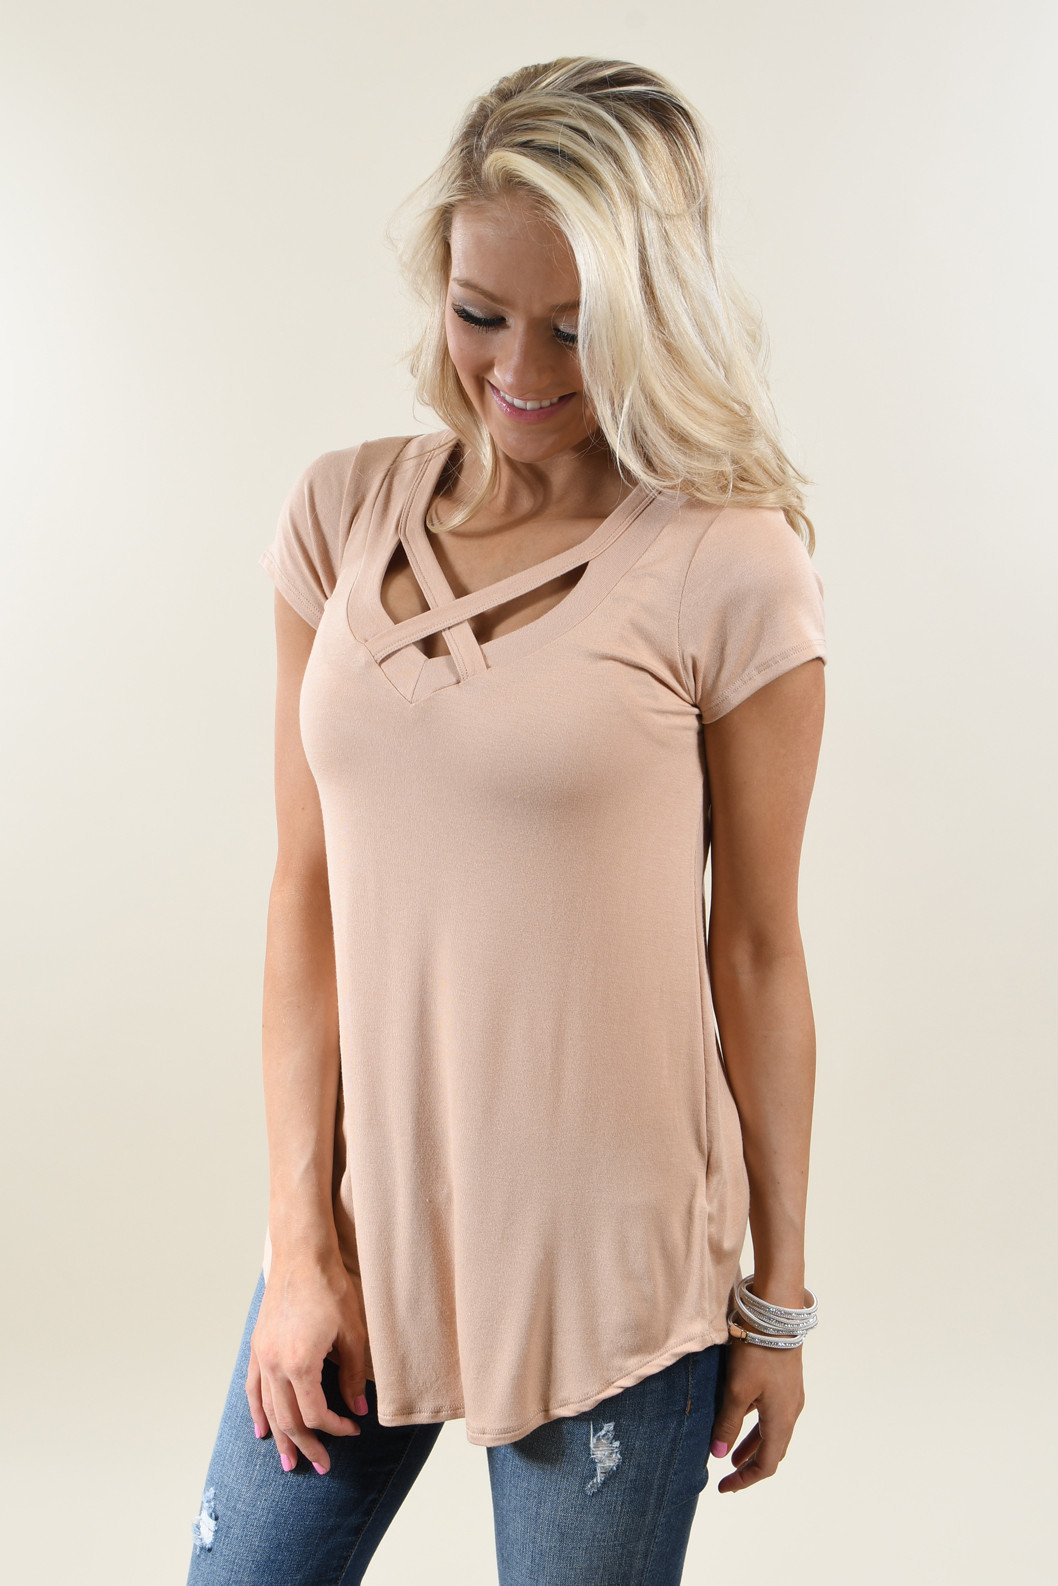 The Promise Criss Cross Top ~ Taupe